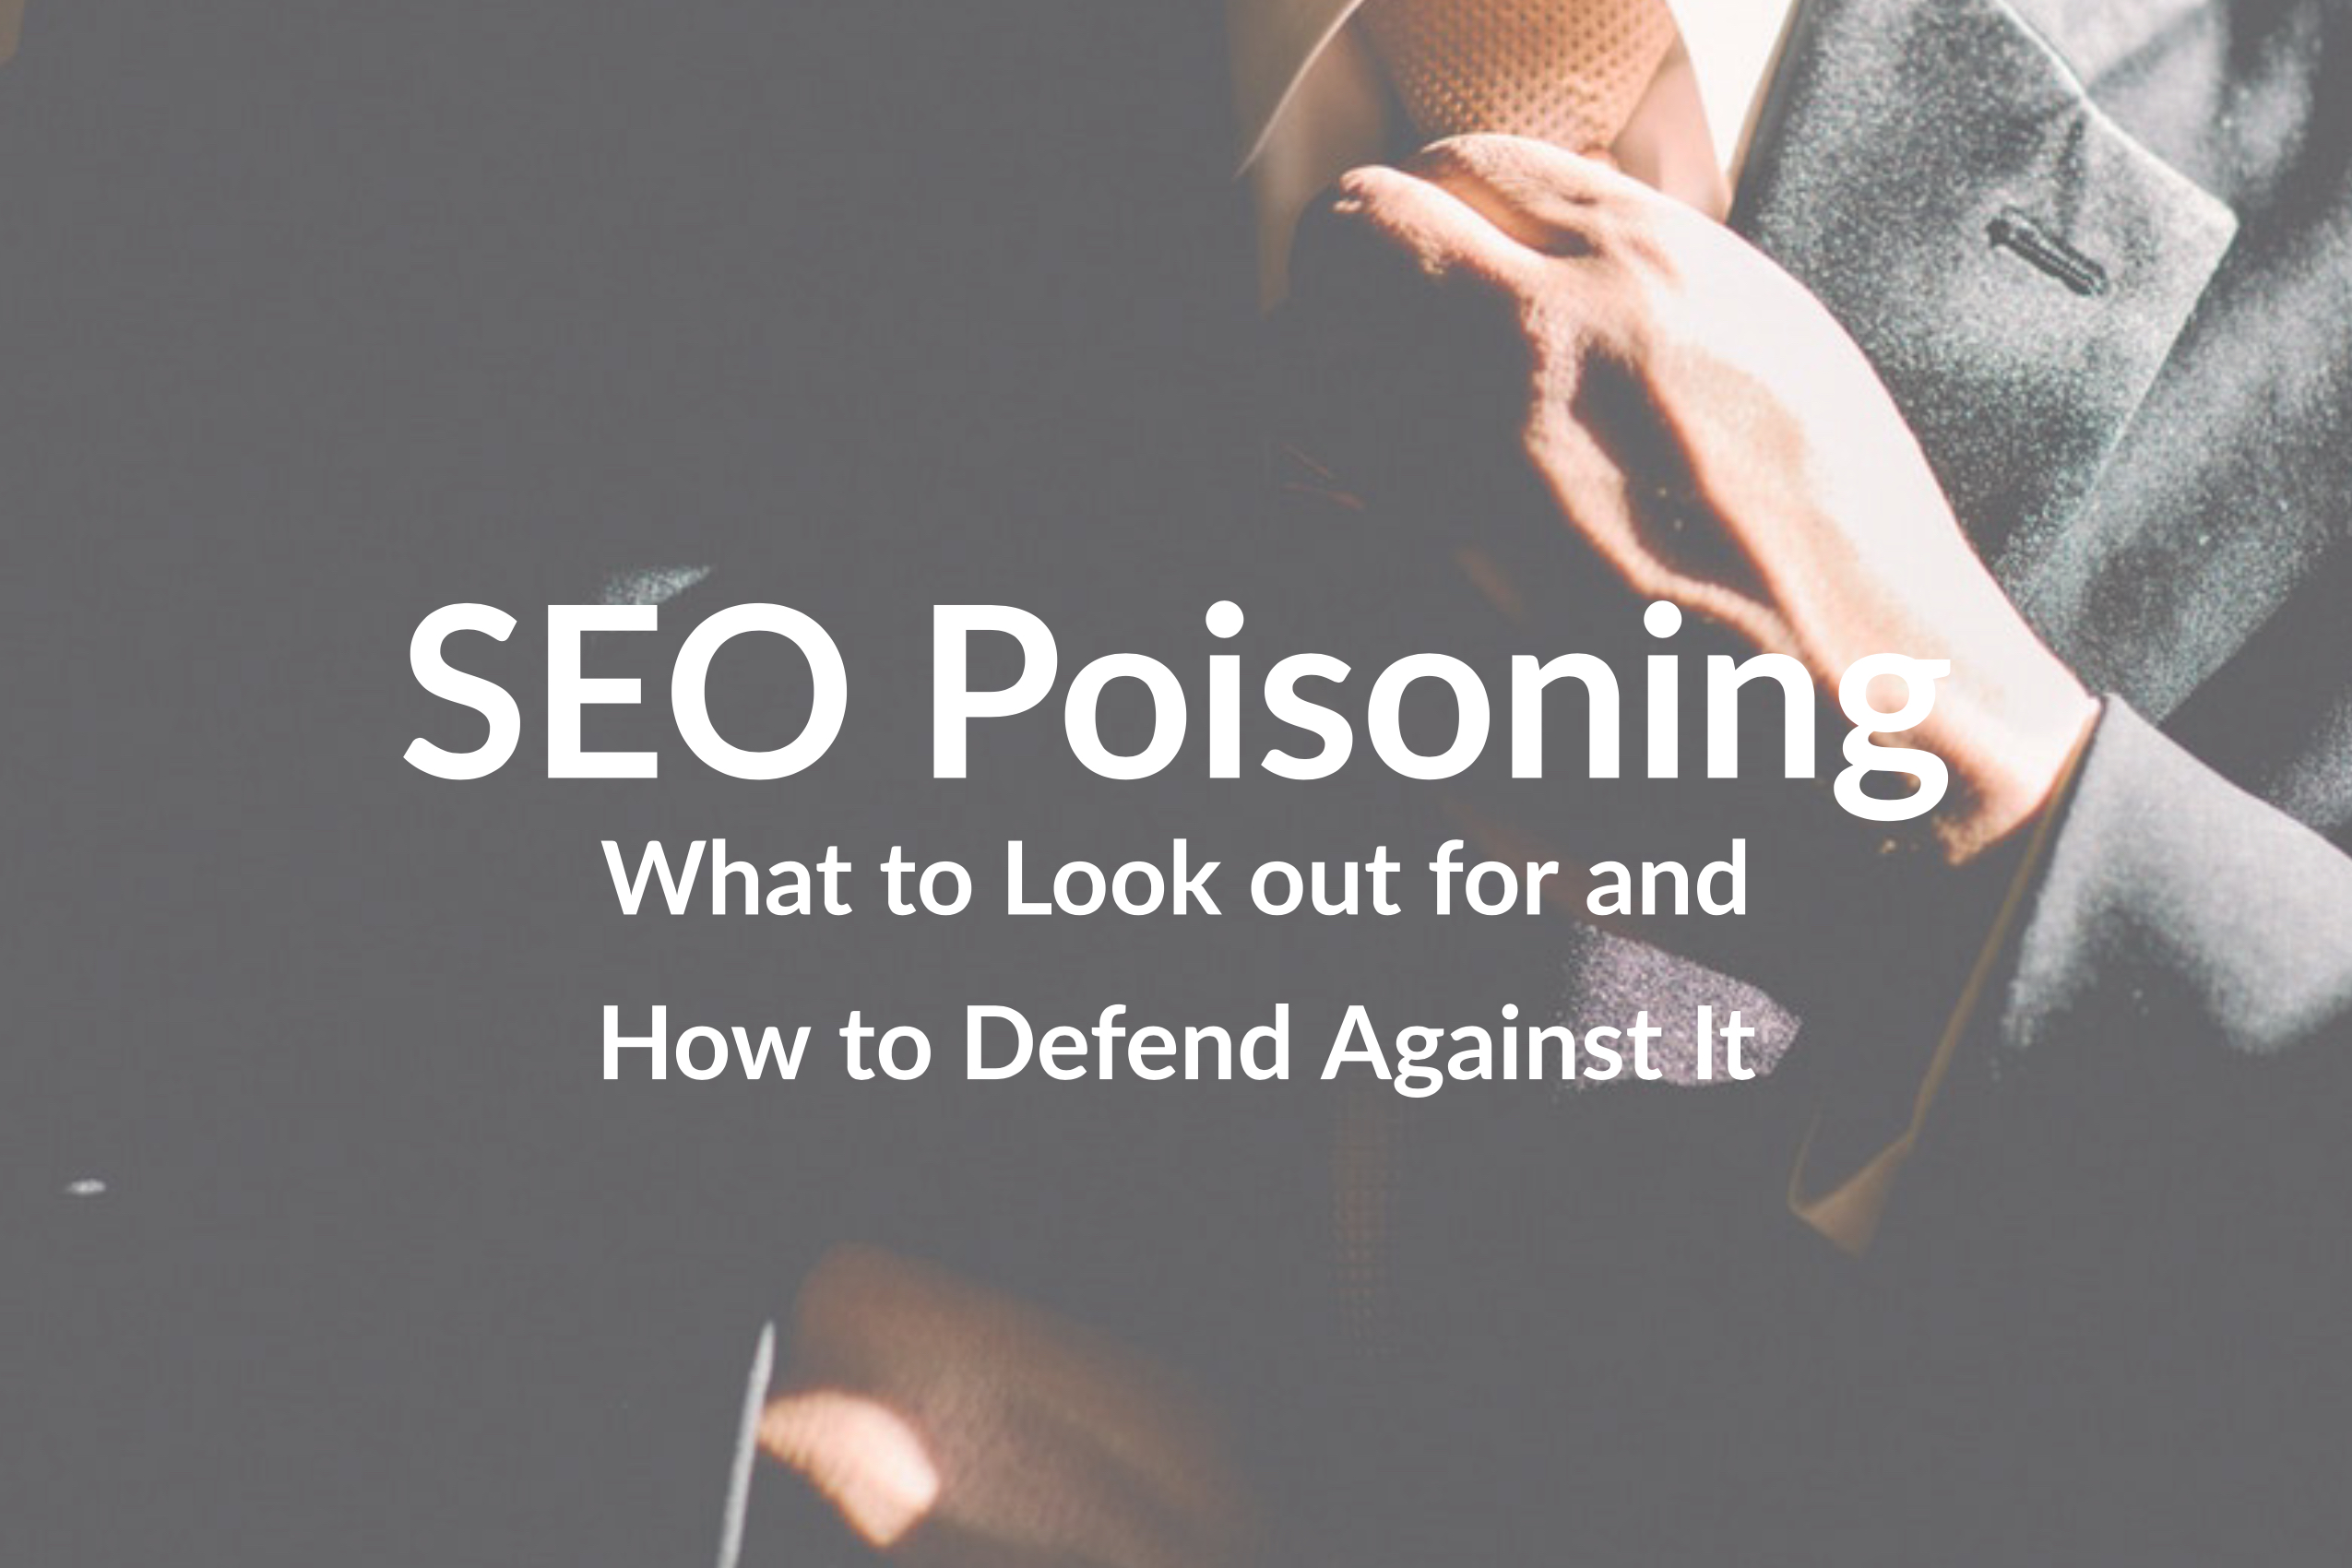 SEO Poisoning: What to Look out for and How to Defend Against It